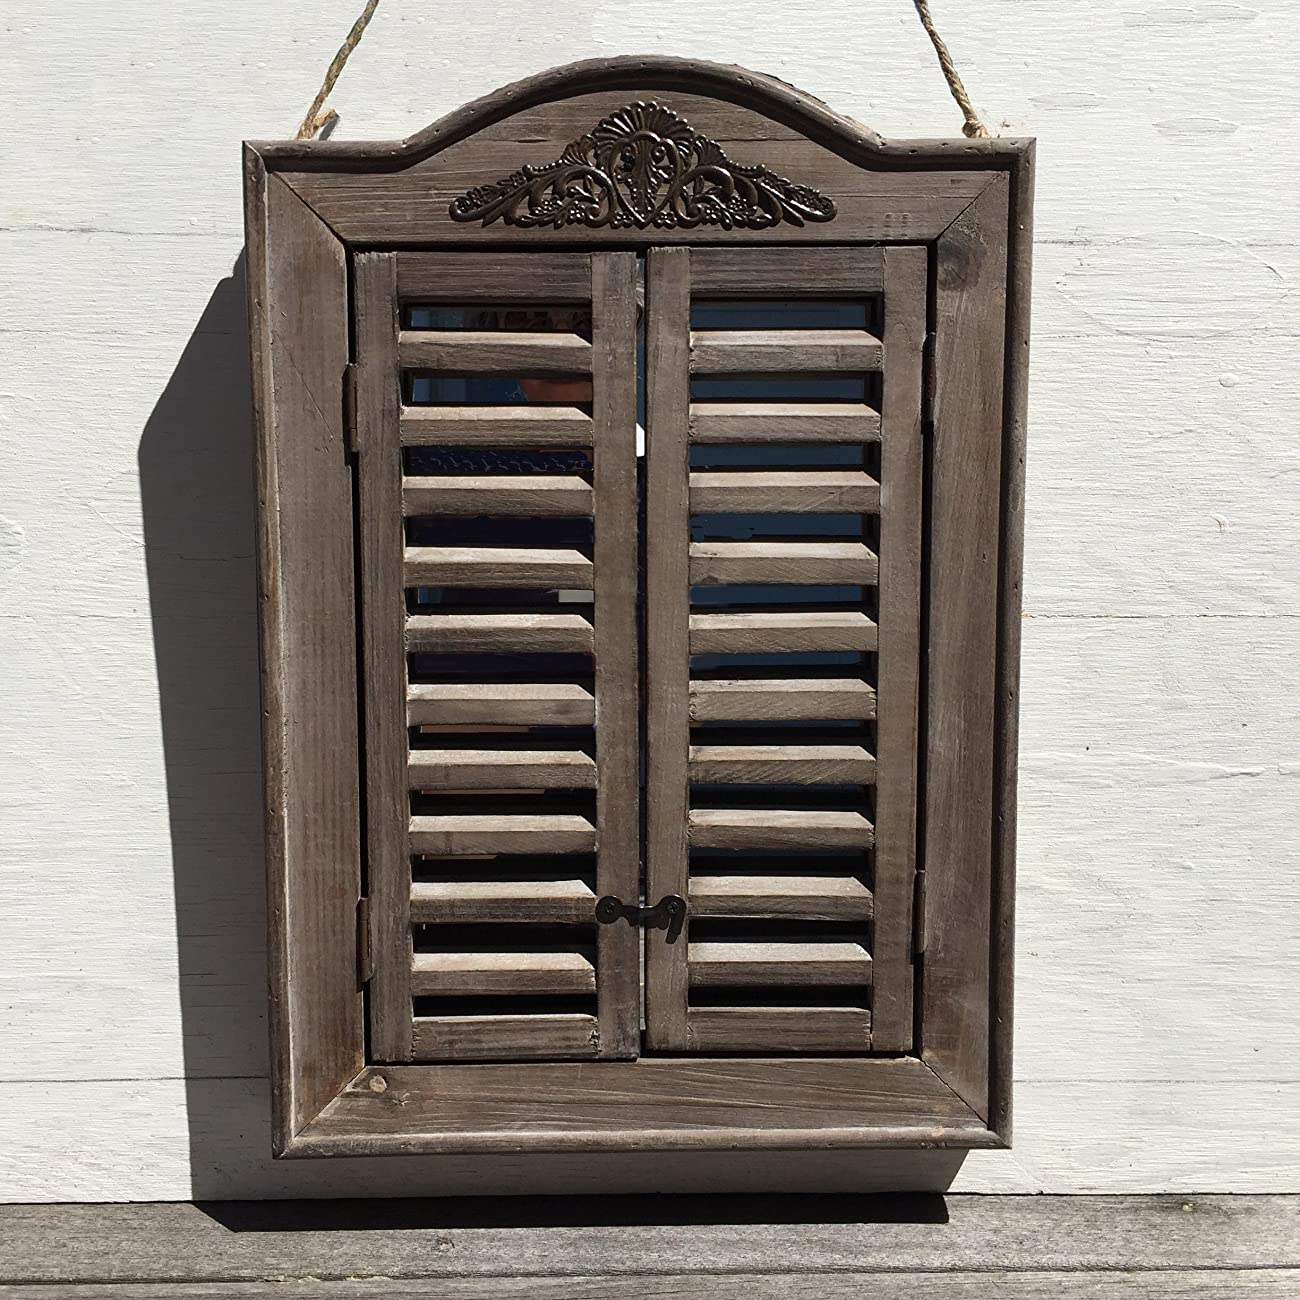 The French Country Style Rustic Window Mirror with Shutters, Sustainable Wood, Approx. 18 Inches High, Distressed Gray Wash with Vintage Style Metal Decoration, By Whole House Worlds 2